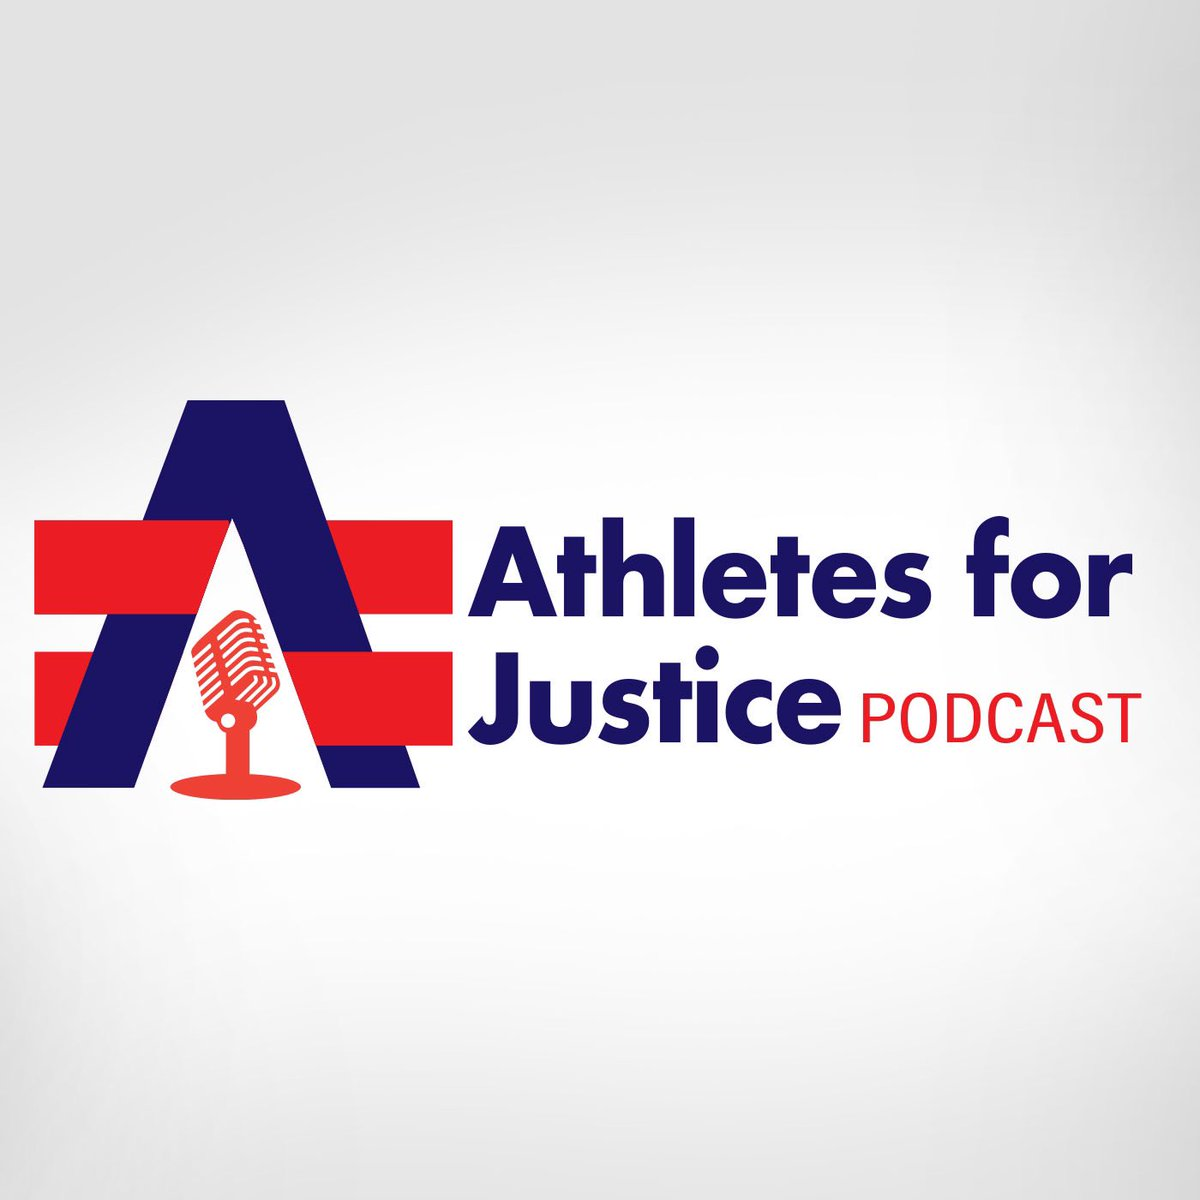 ..I'm starting a new Podcast!! It's called the Athletes for Justice podcast and we're bringing stories of justice and hope to a broken world. Launch day is 1.29.21. Let's join this journey of justice together